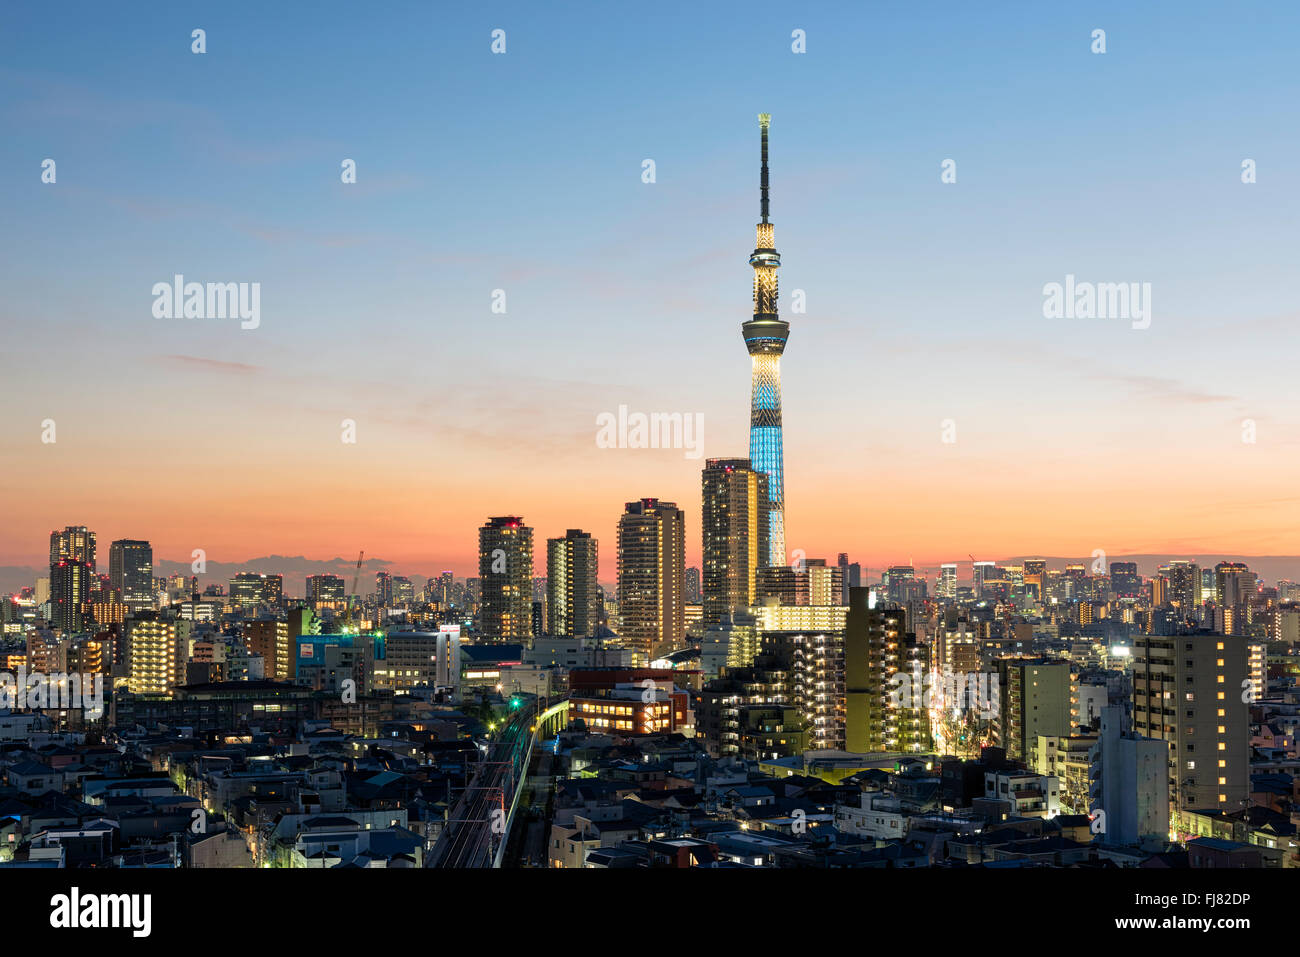 Tokyo; Japan -January 9; 2016: Tokyo Skyline at dusk, view of Asakusa district, Skytree visible in the distance. - Stock Image